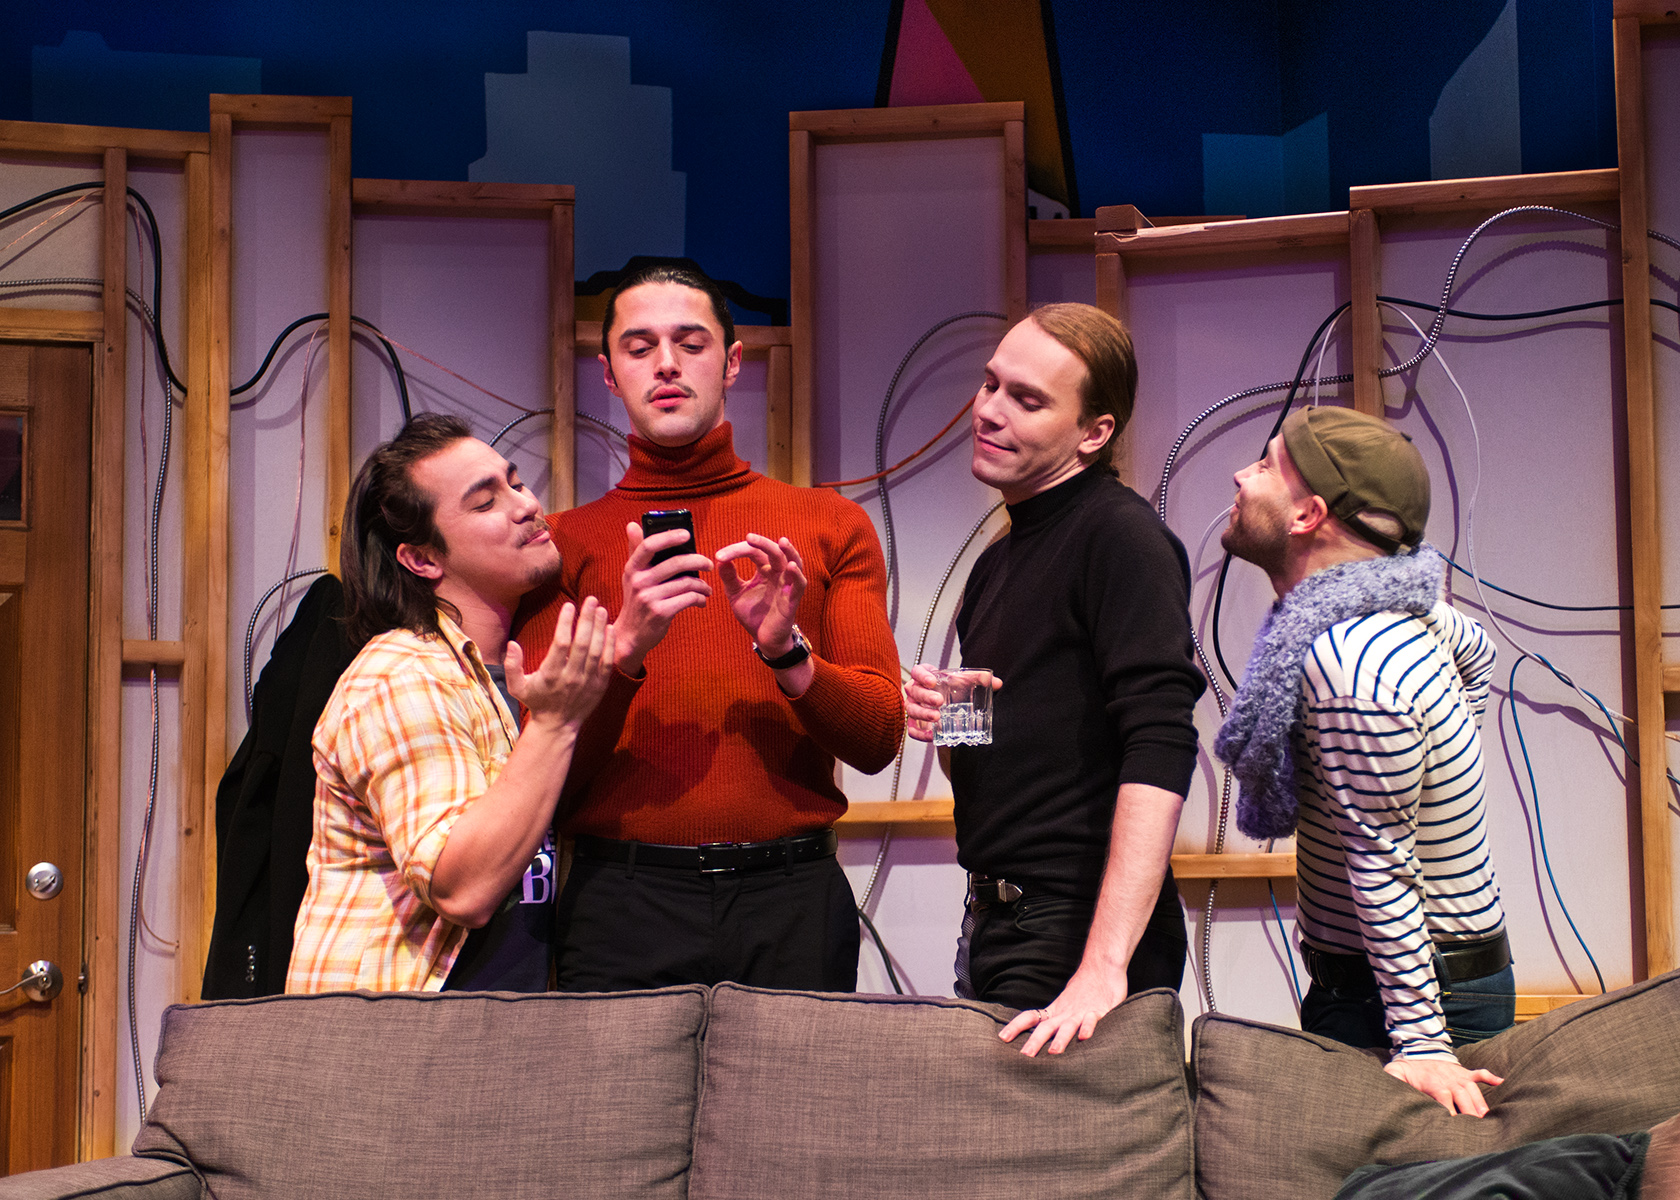 Pictured L to R: Smitty (Sal Mattos), Marcos (Vaho), J (Chris Steele) and Dev (Devon Marra) reminisce about past kikis. Photo by Lois Tema. (Low-Res)